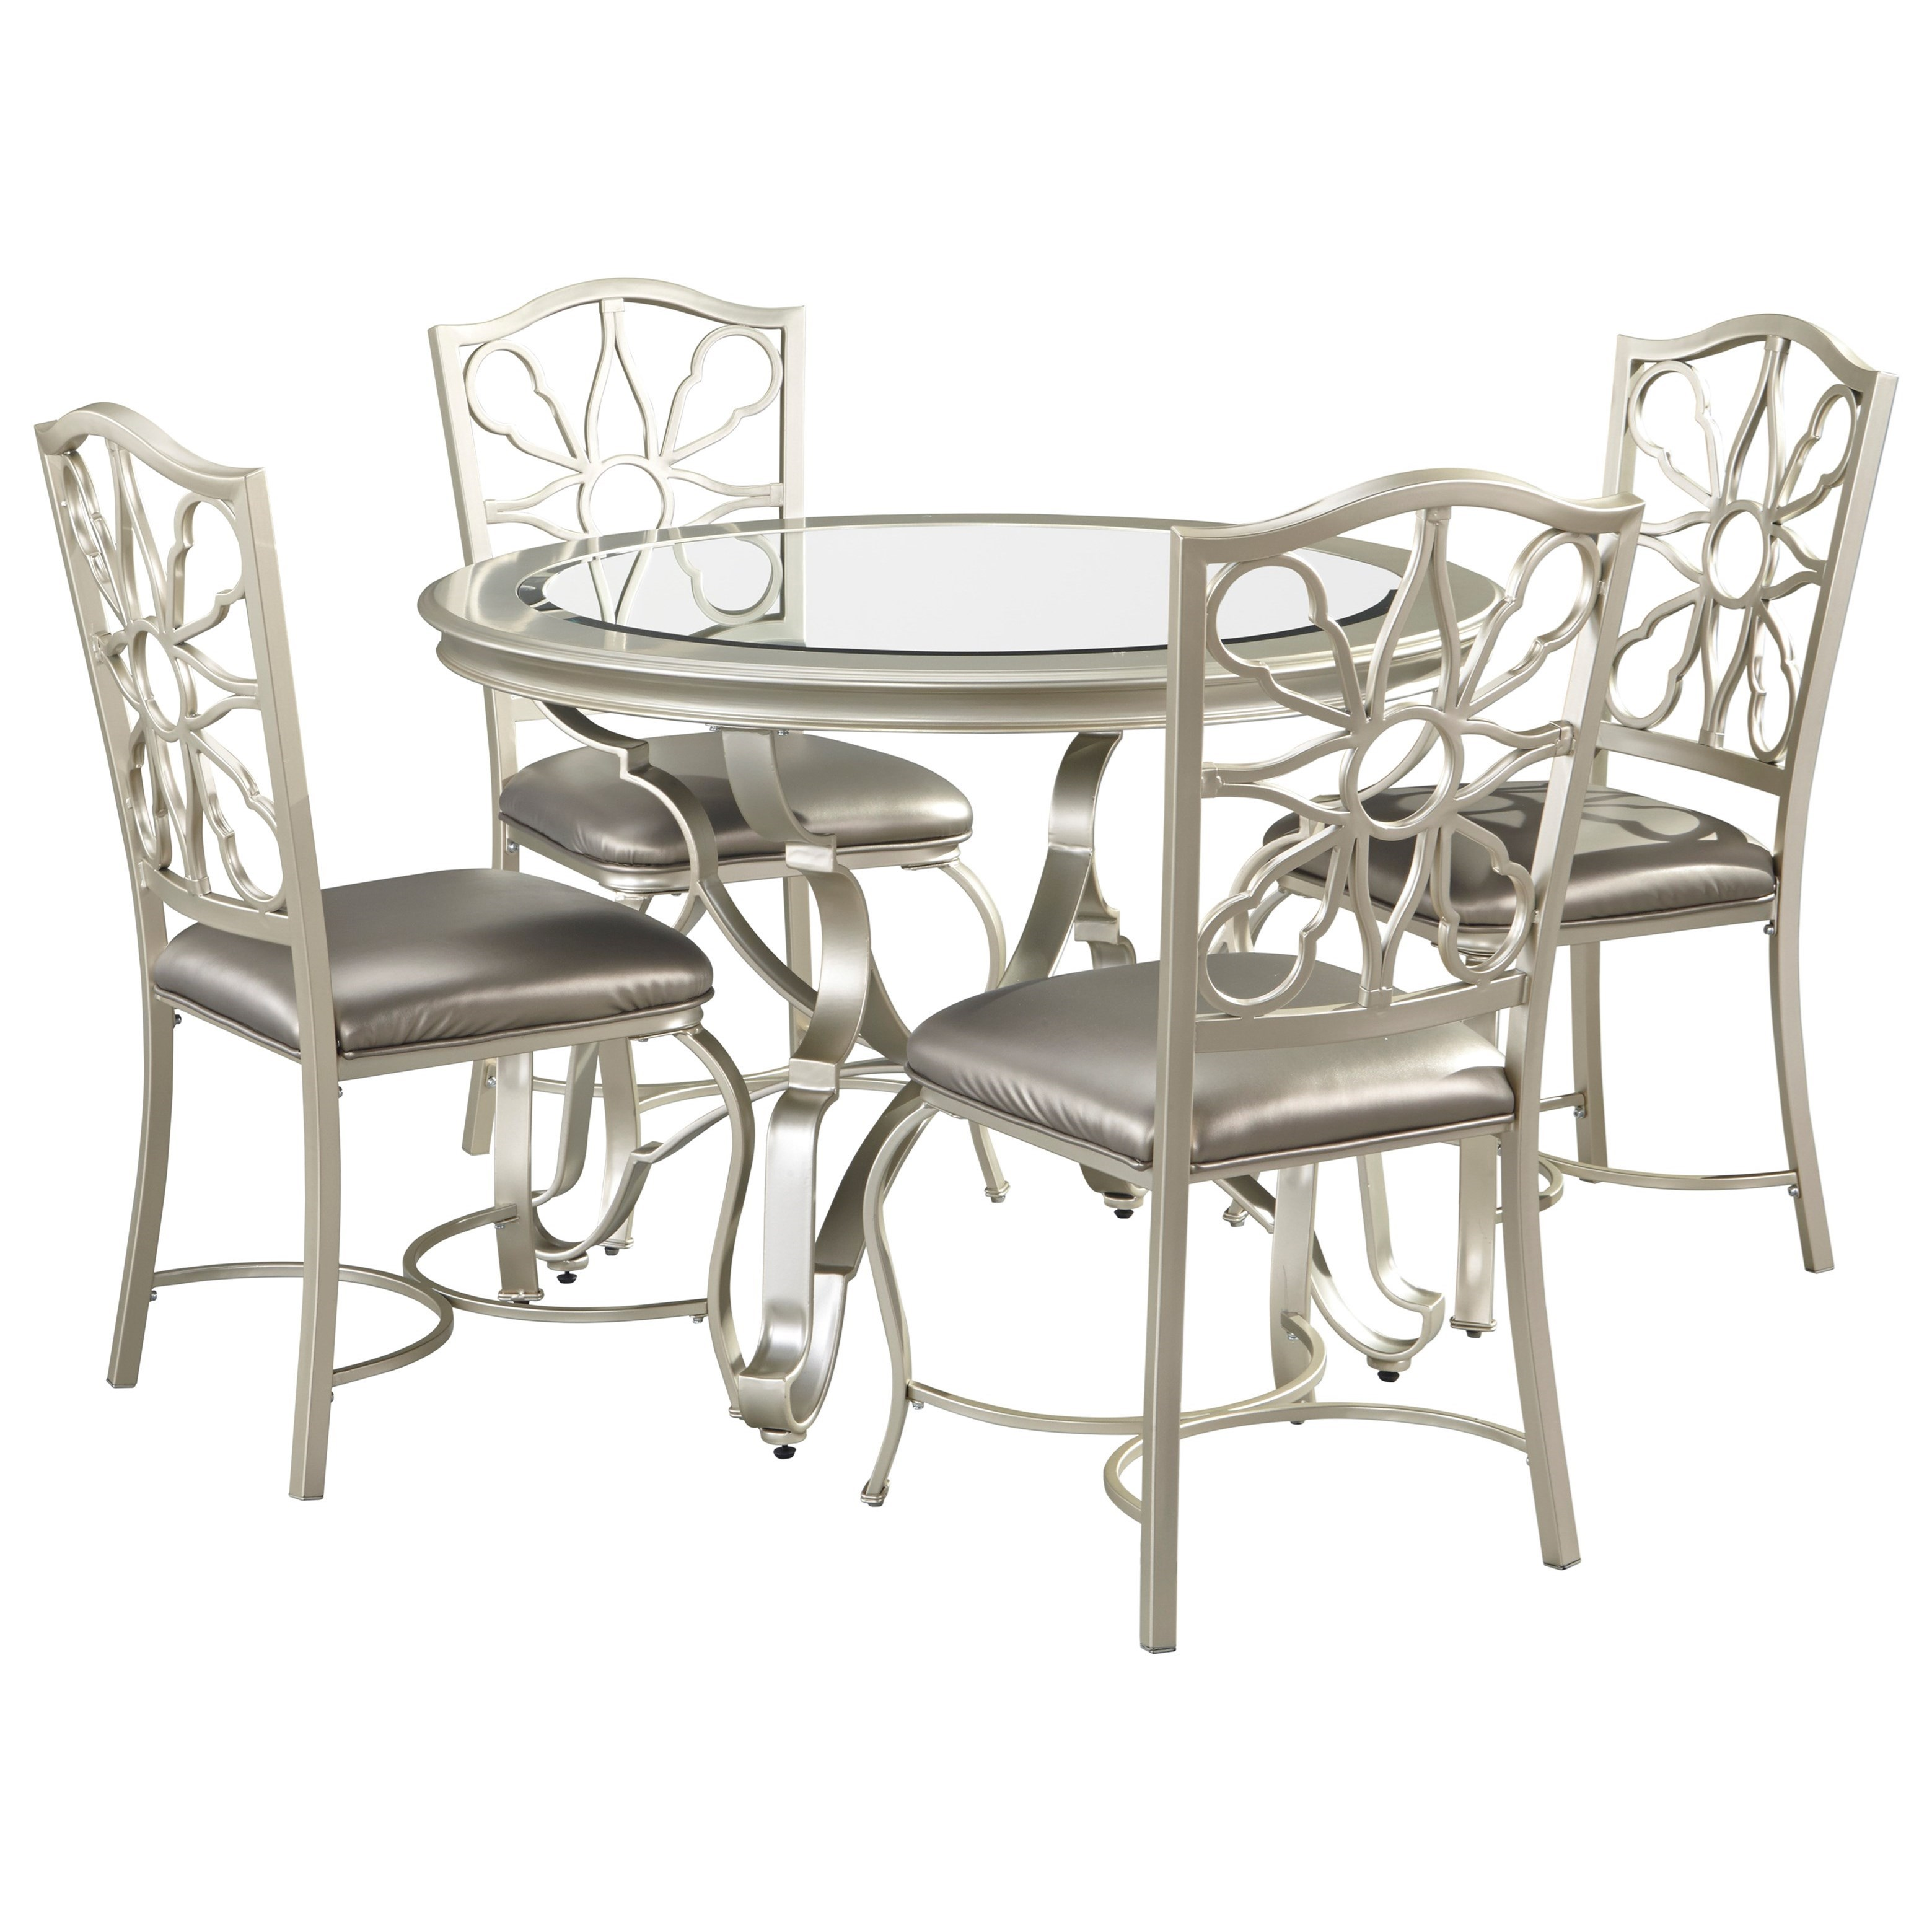 Signature Design By Ashley Shollyn 5 Piece Dining Table Set In Silver Finish Value City